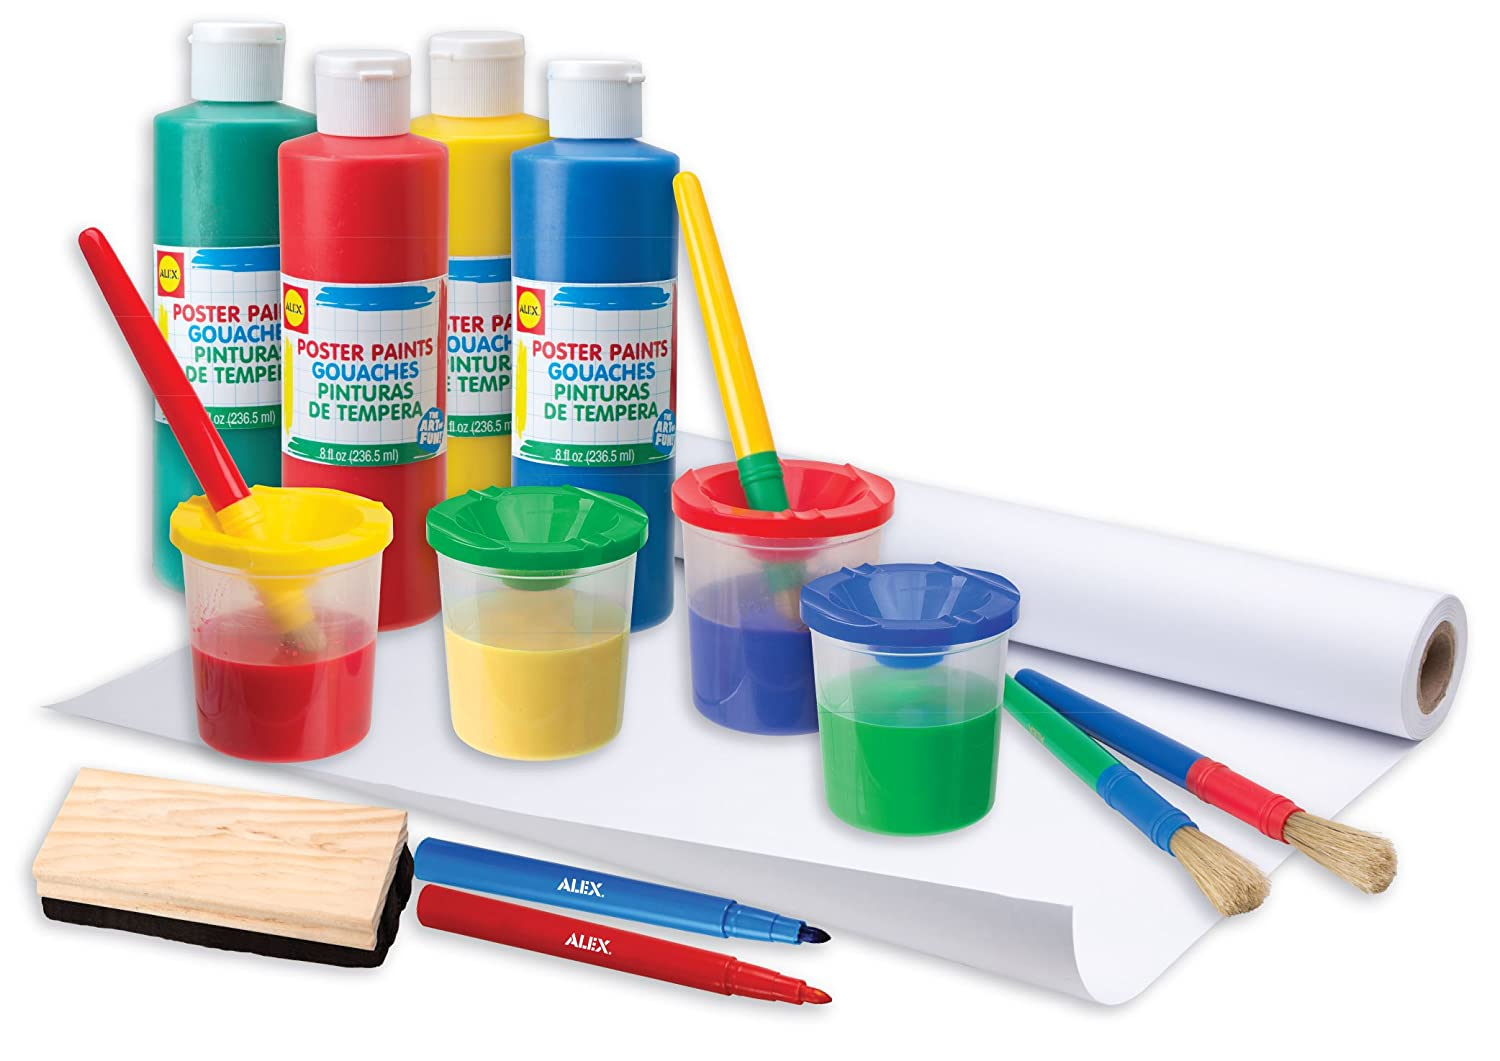 Alex toys artist studio ultimate easel accessories painting kit alex toys artist studio ultimate easel accessories painting kit 21e easels amazon canada sciox Images